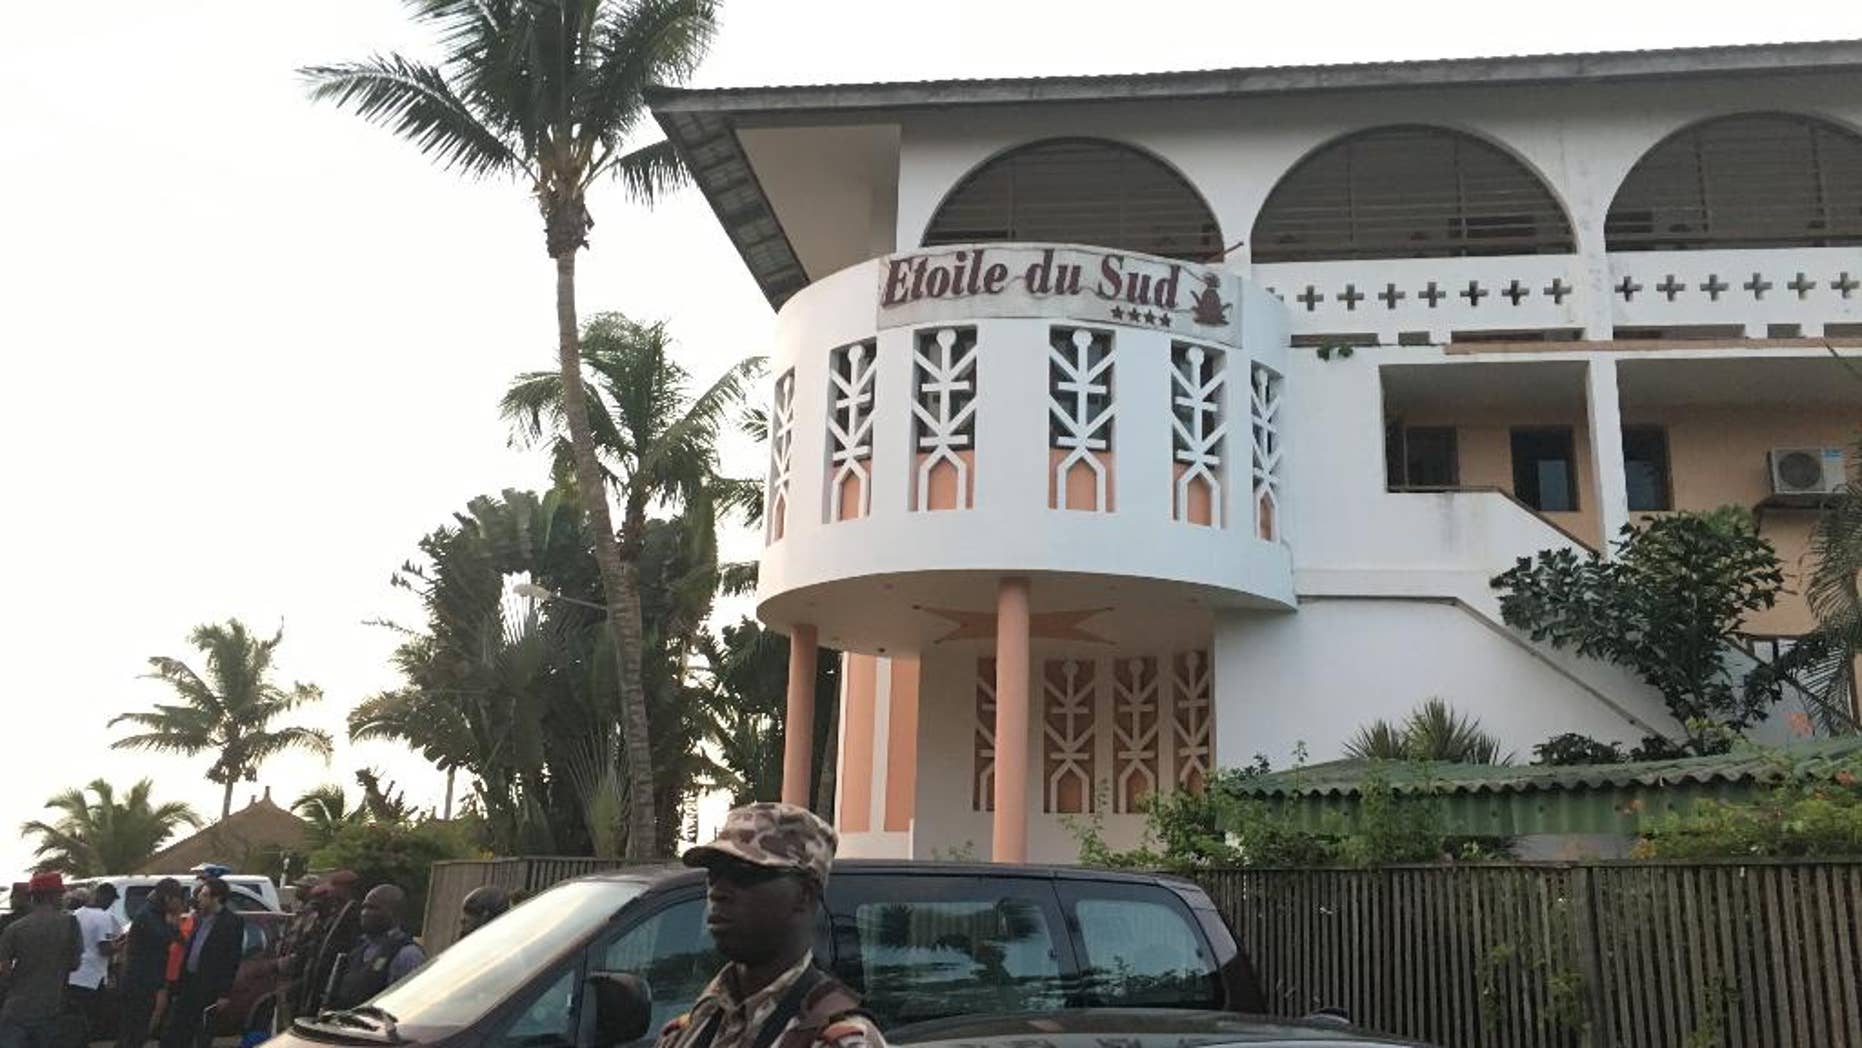 A soldier stands outside the Etoile du Sud, where gunmen attacked earlier in March.